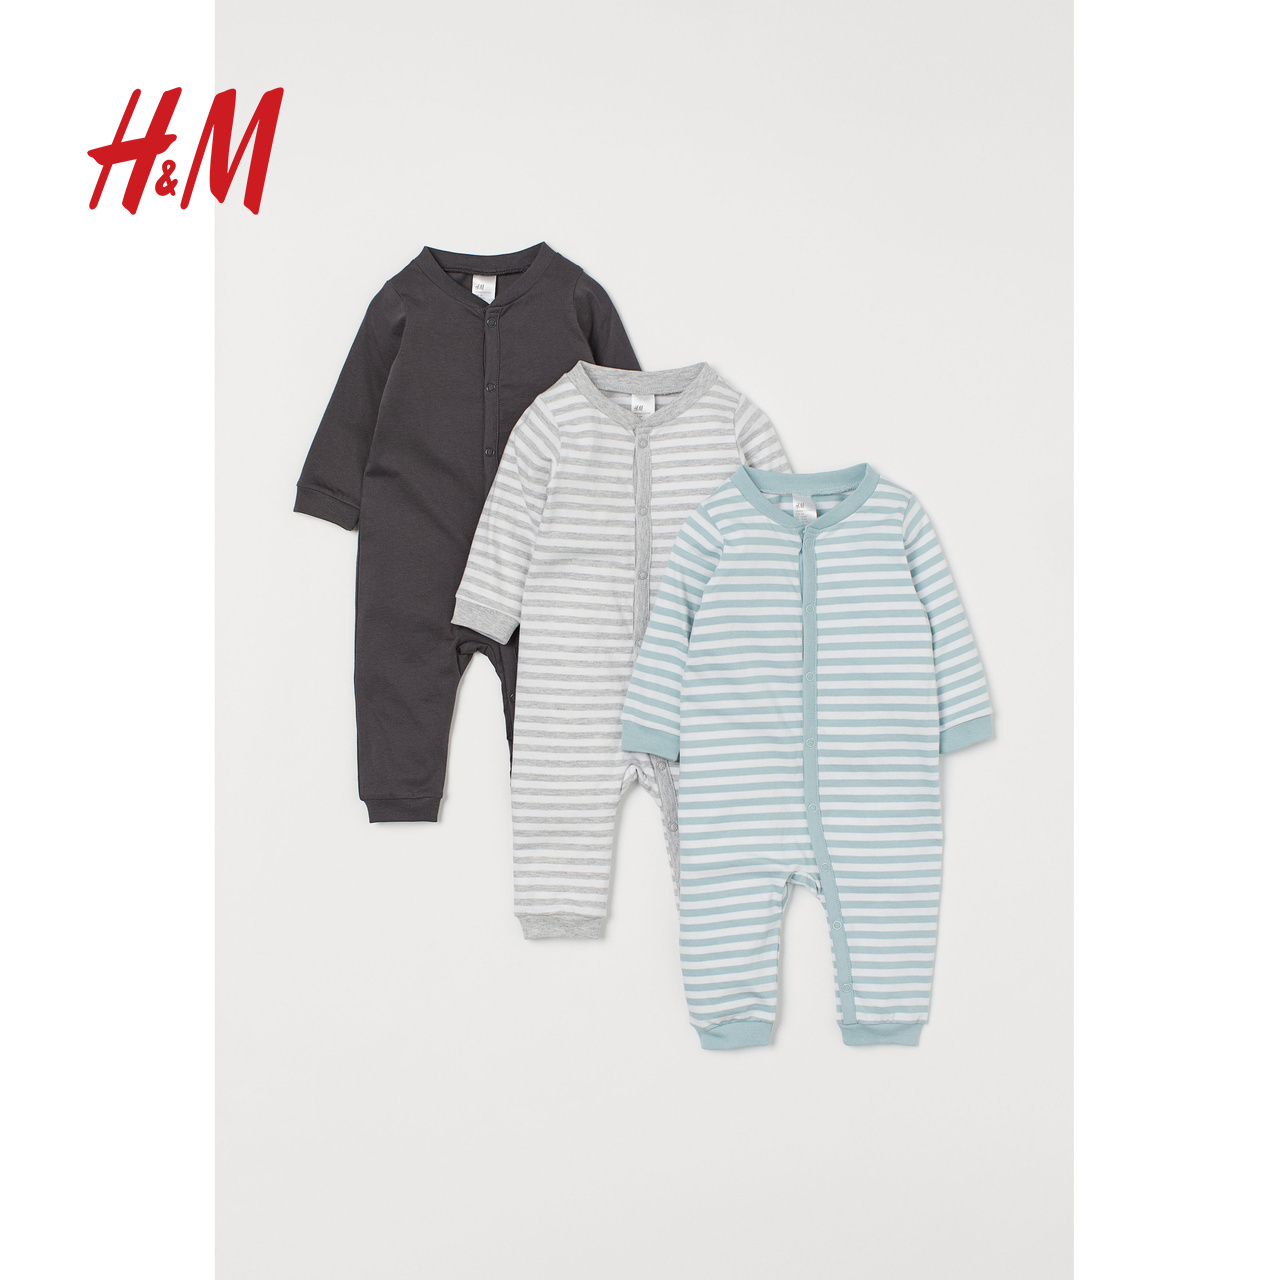 HM children's one-piece baby clothes 2020 spring pure cotton Harbin clothes baby pajamas 3-piece clothes 0769102